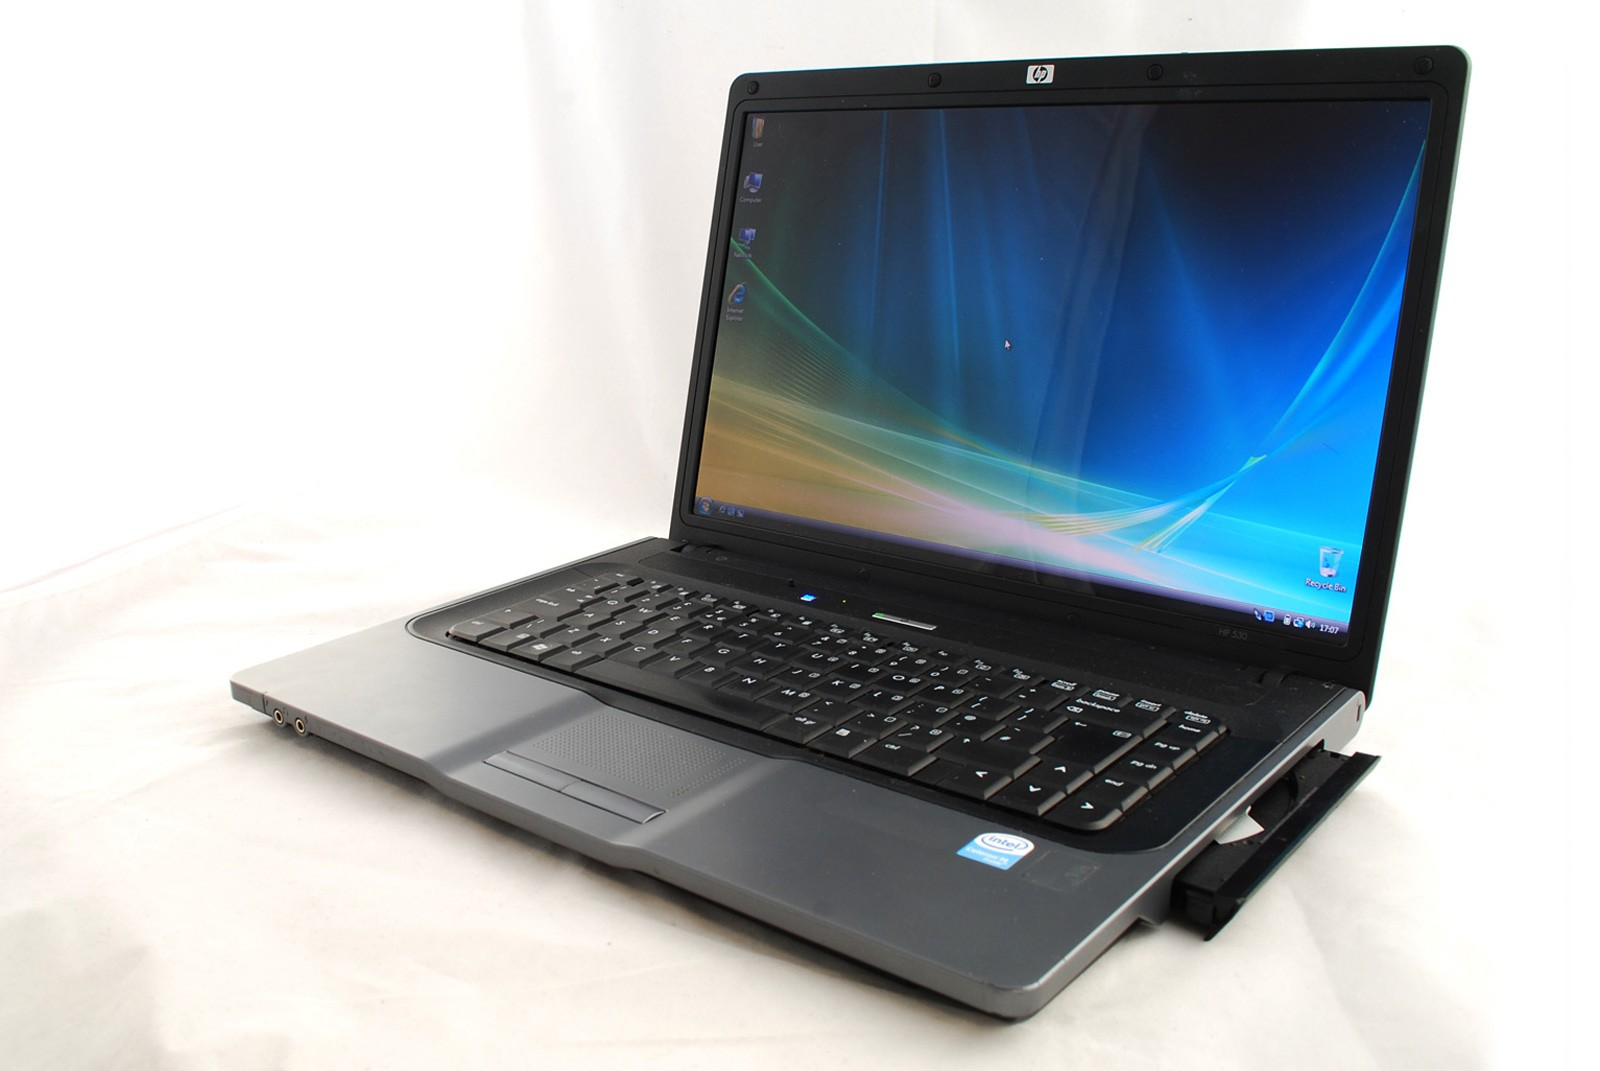 For Sale Hp 530 Fairly Used Laptop In Excellent Condition